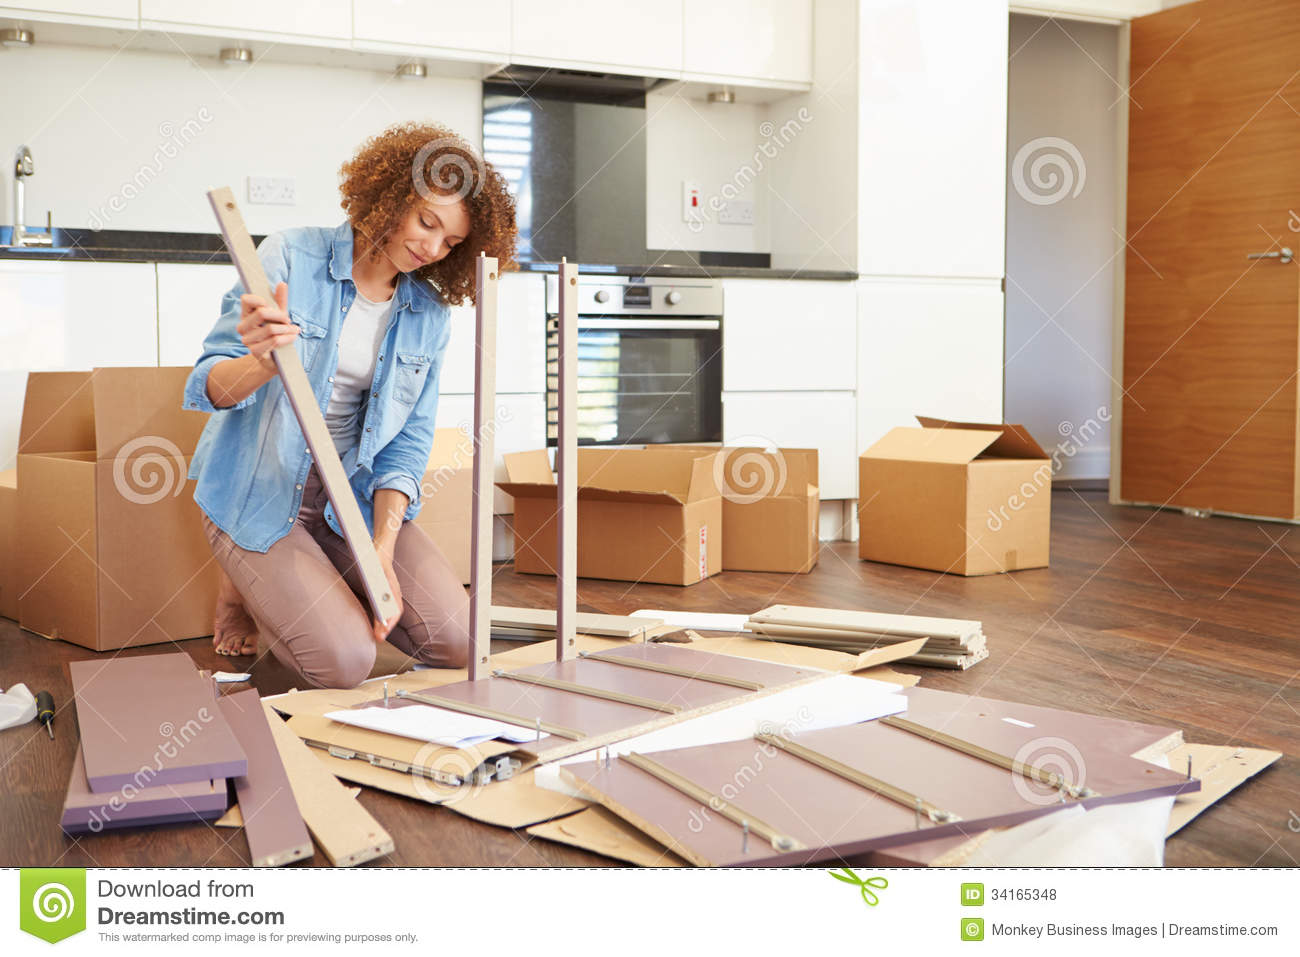 Awesome Woman Putting Together Self Assembly Furniture In New Home Royalty Free  Stock Photos